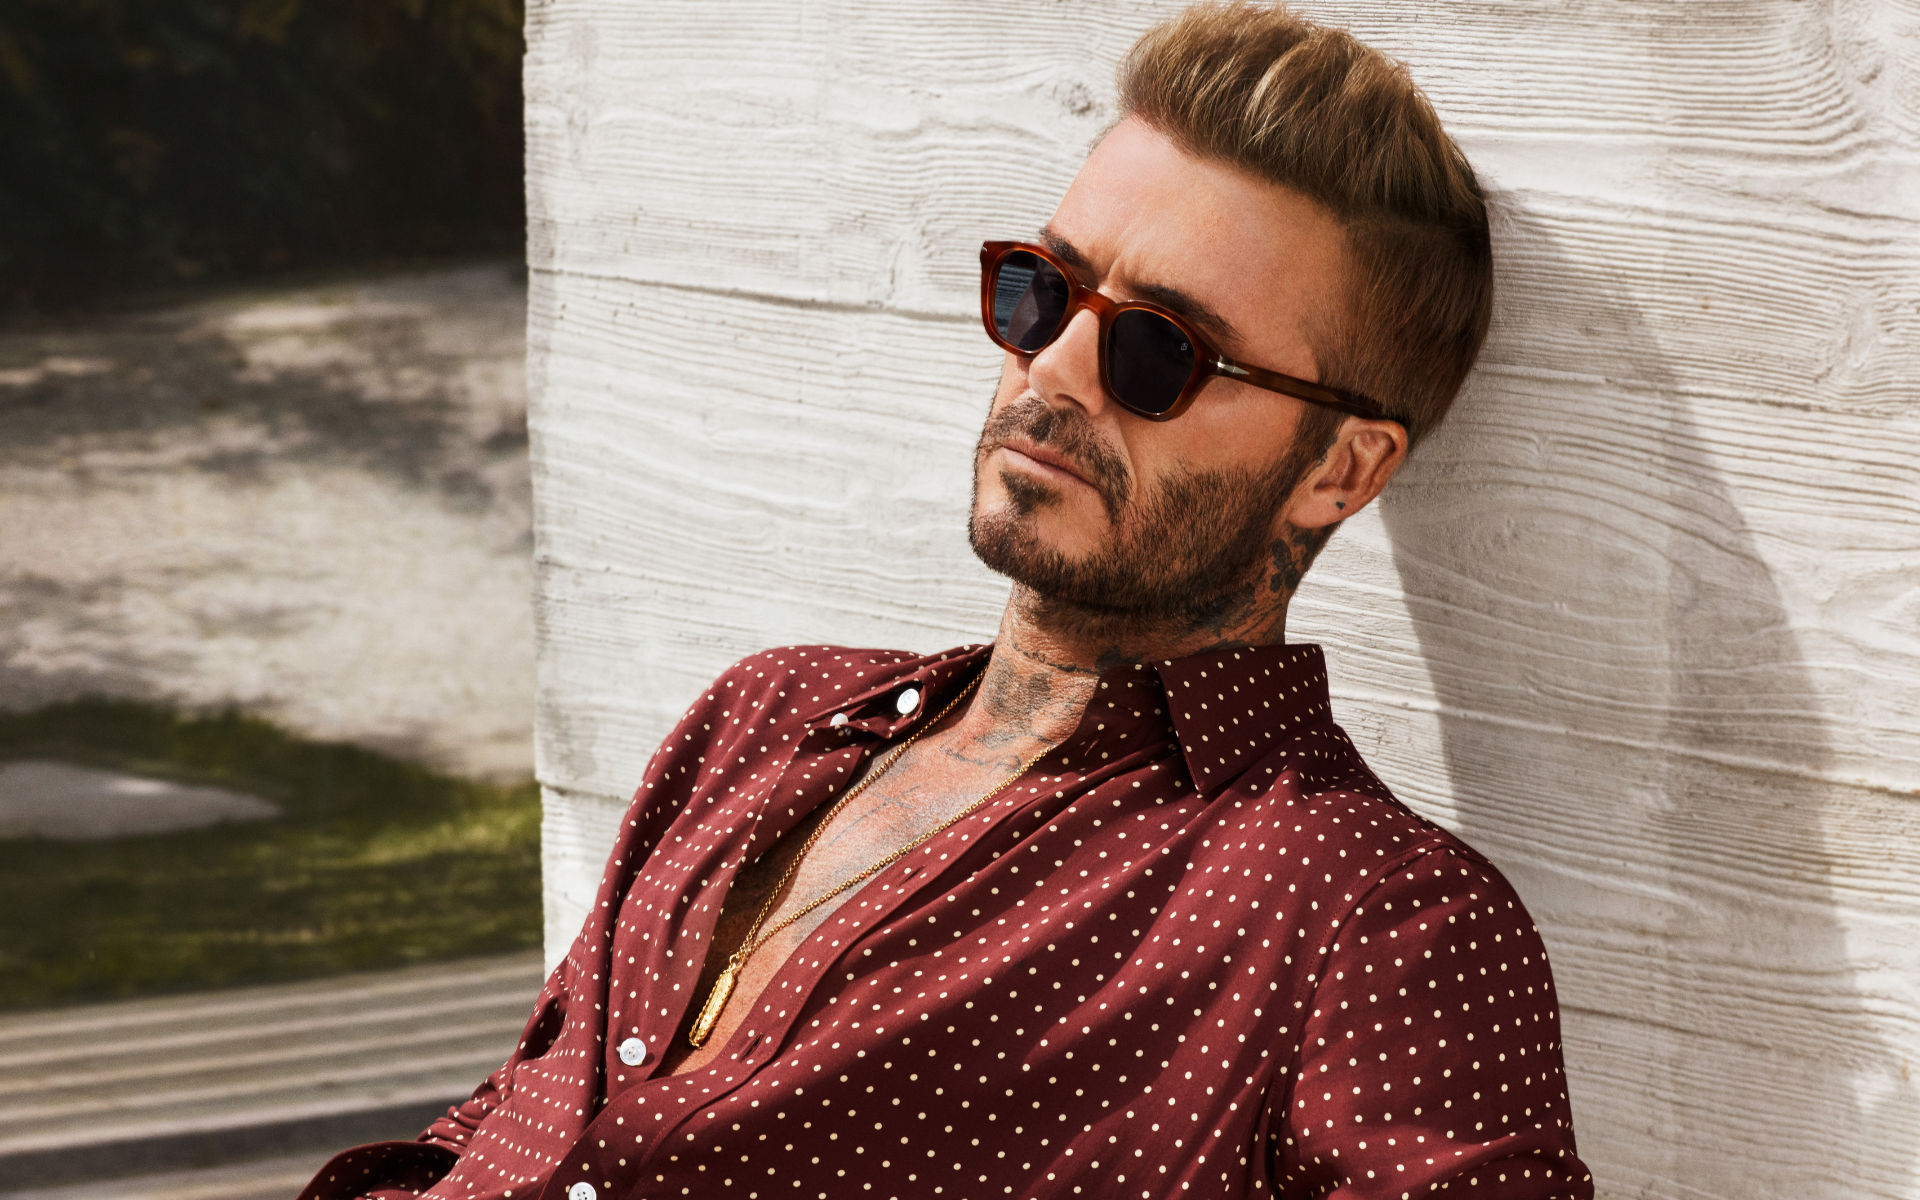 David Beckham modelling sunglasses from his own label (Photo: Safilo)